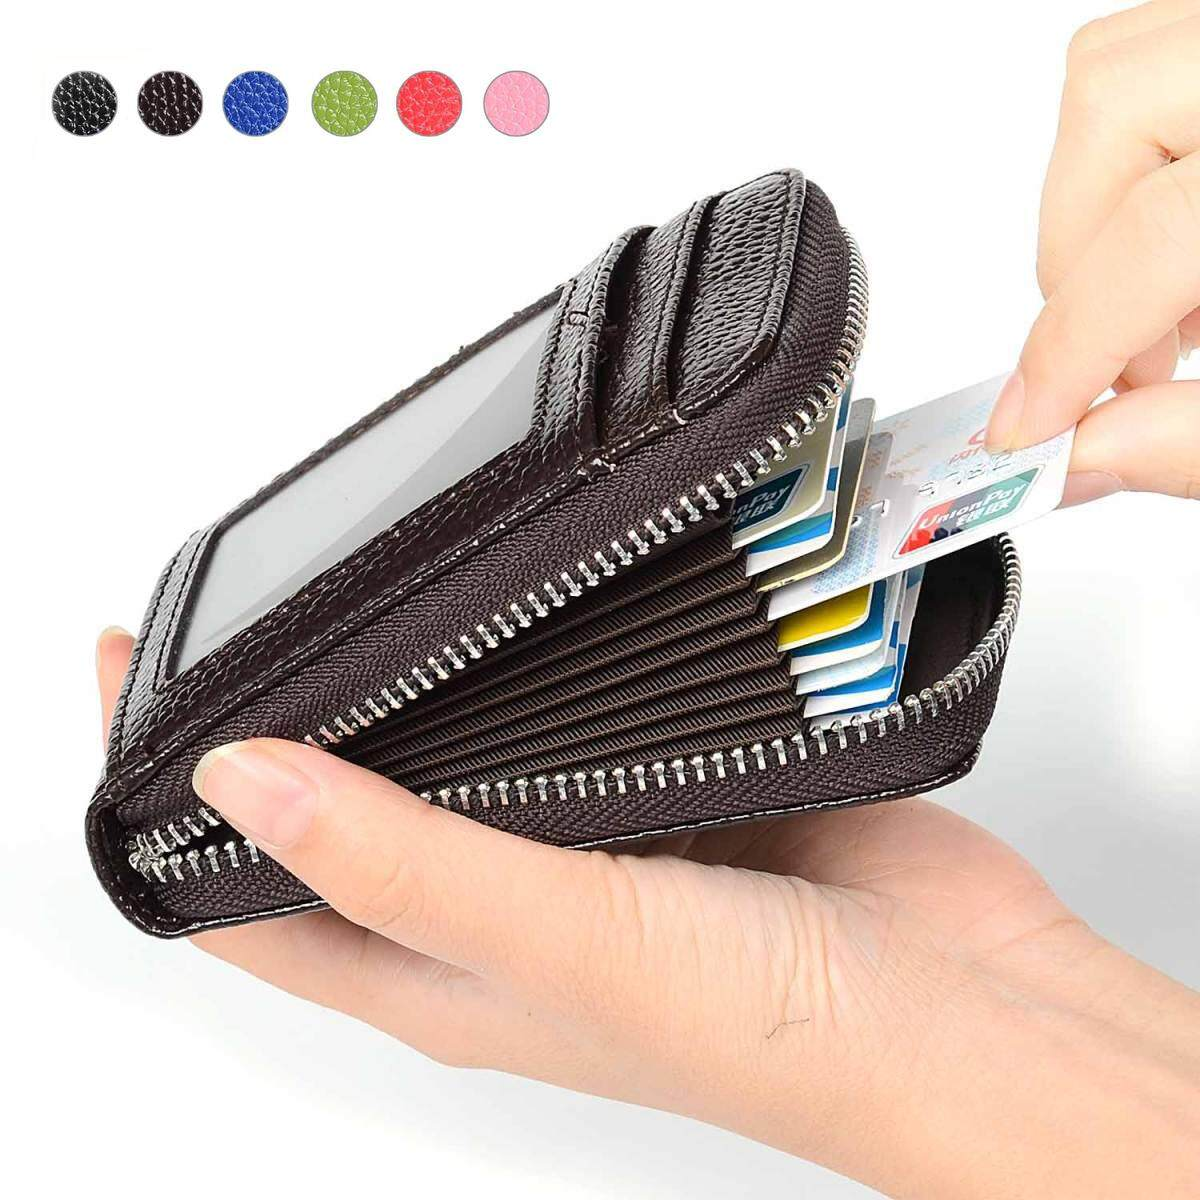 b80fae92d1e6 RFID Blocking Genuine Leather Credit Card Case Holder Security Travel  Wallet Front Pocket Wallets for Men and Women